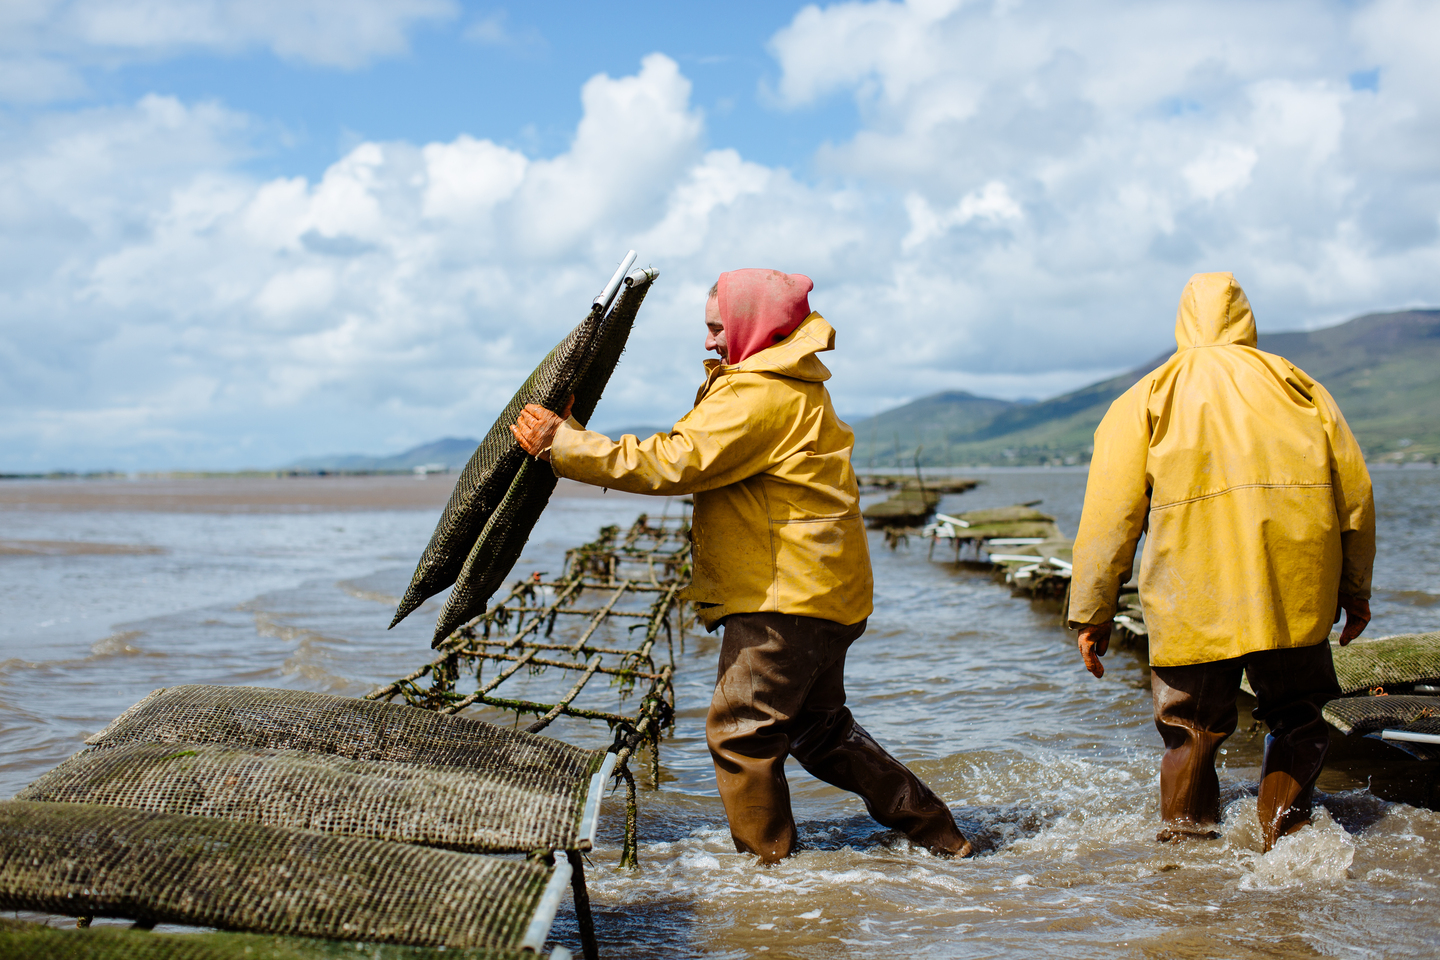 Cromane Bay Shellfish Oyster farm shaking oyster bags@edschofieldphoto